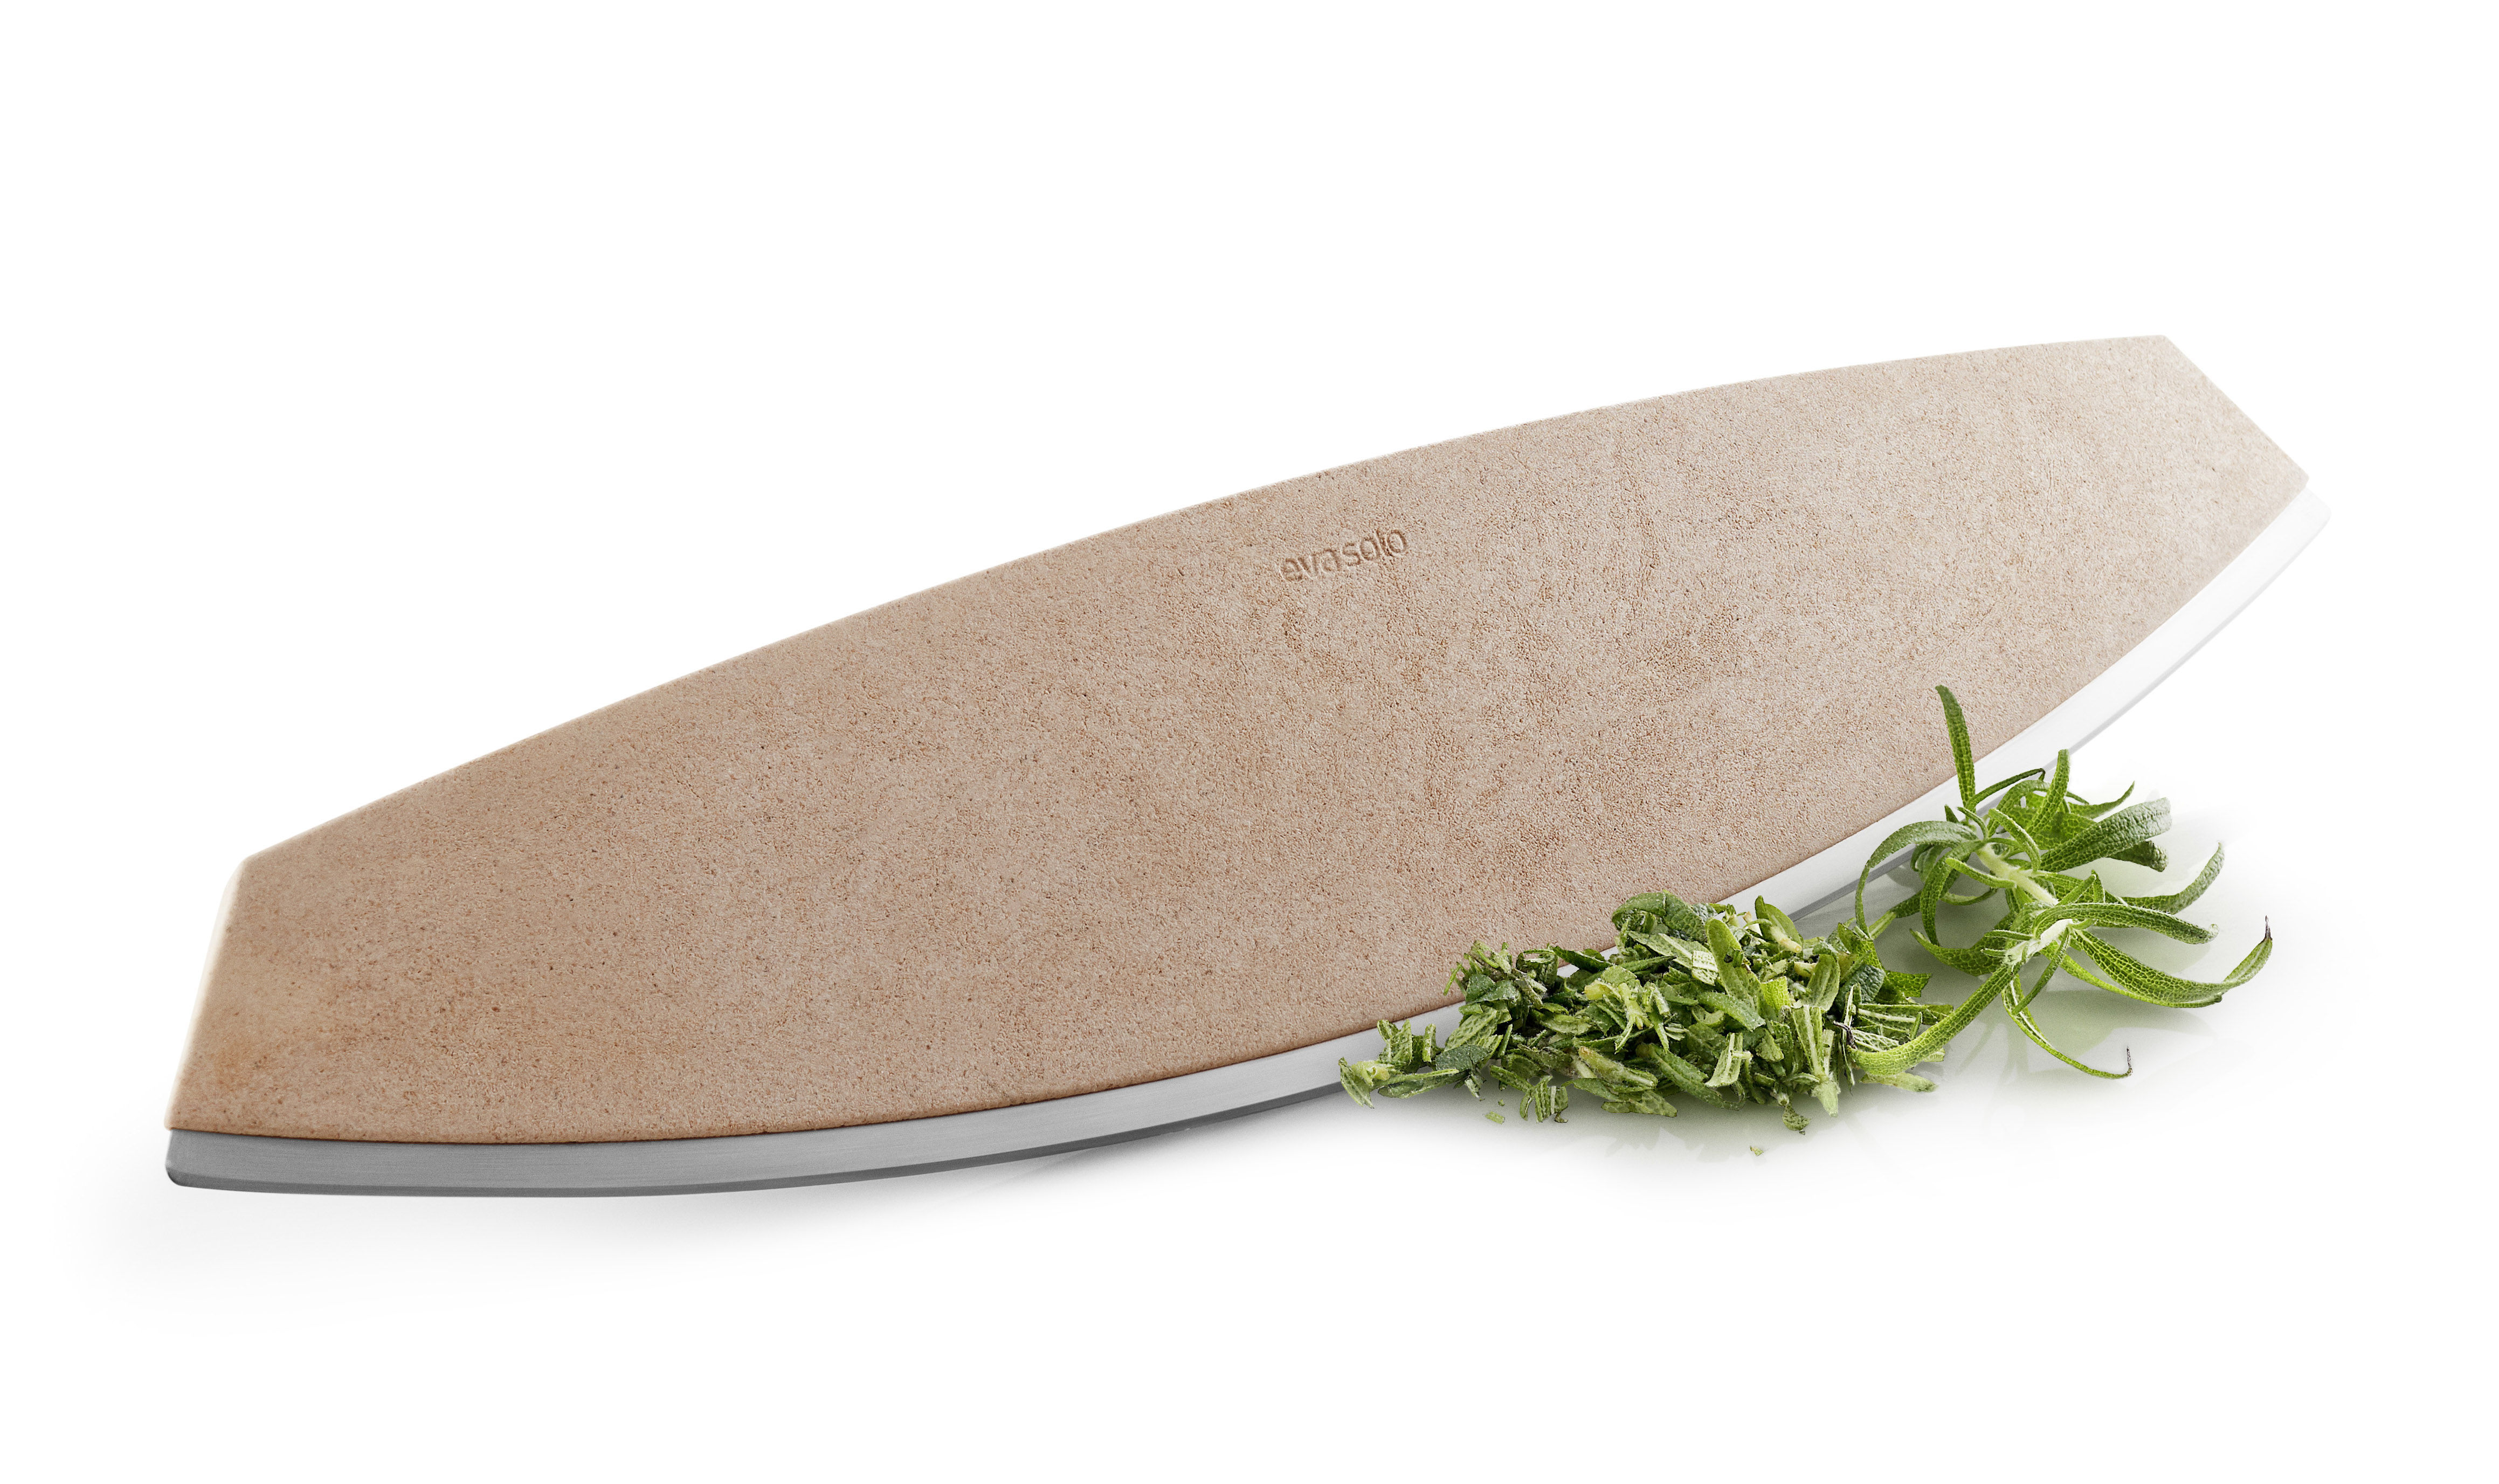 Kitchenware - Kitchen Equipment - Slicer -  for pizza & herbs - L 37 cm by Eva Solo - Beige - Composite material, Stainless steel